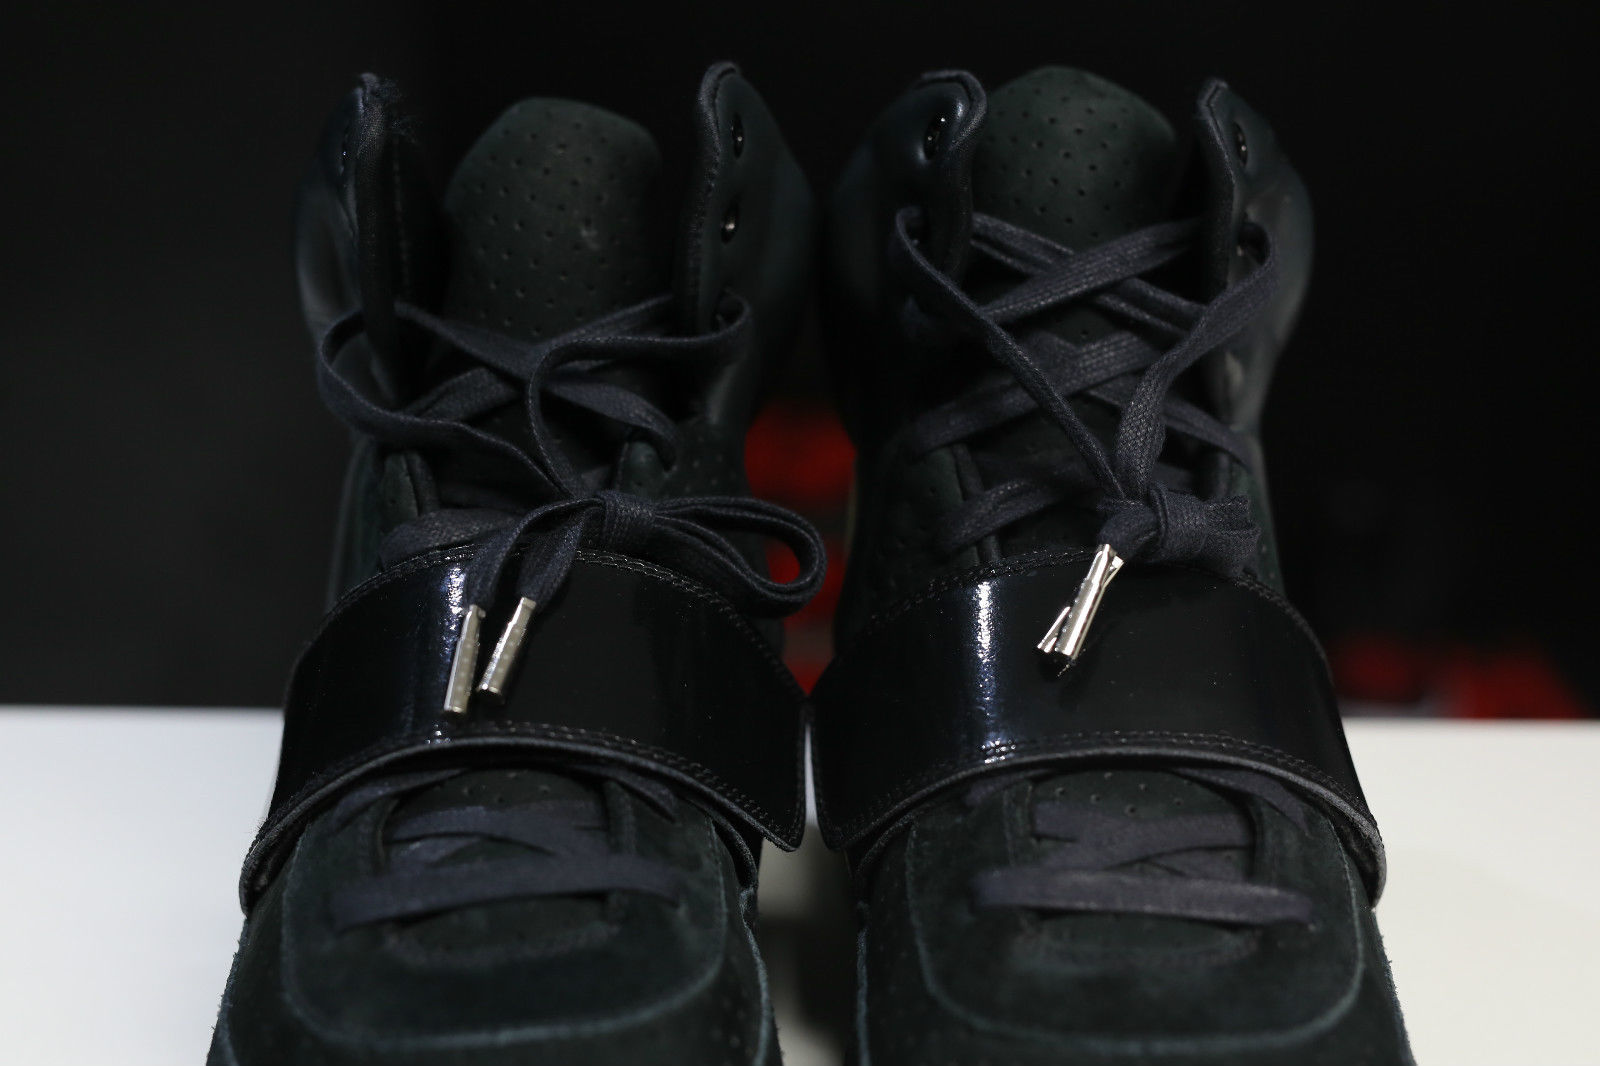 c38af217767c7 Nike Air Yeezy Kanye West Black White Sample Pair Strap